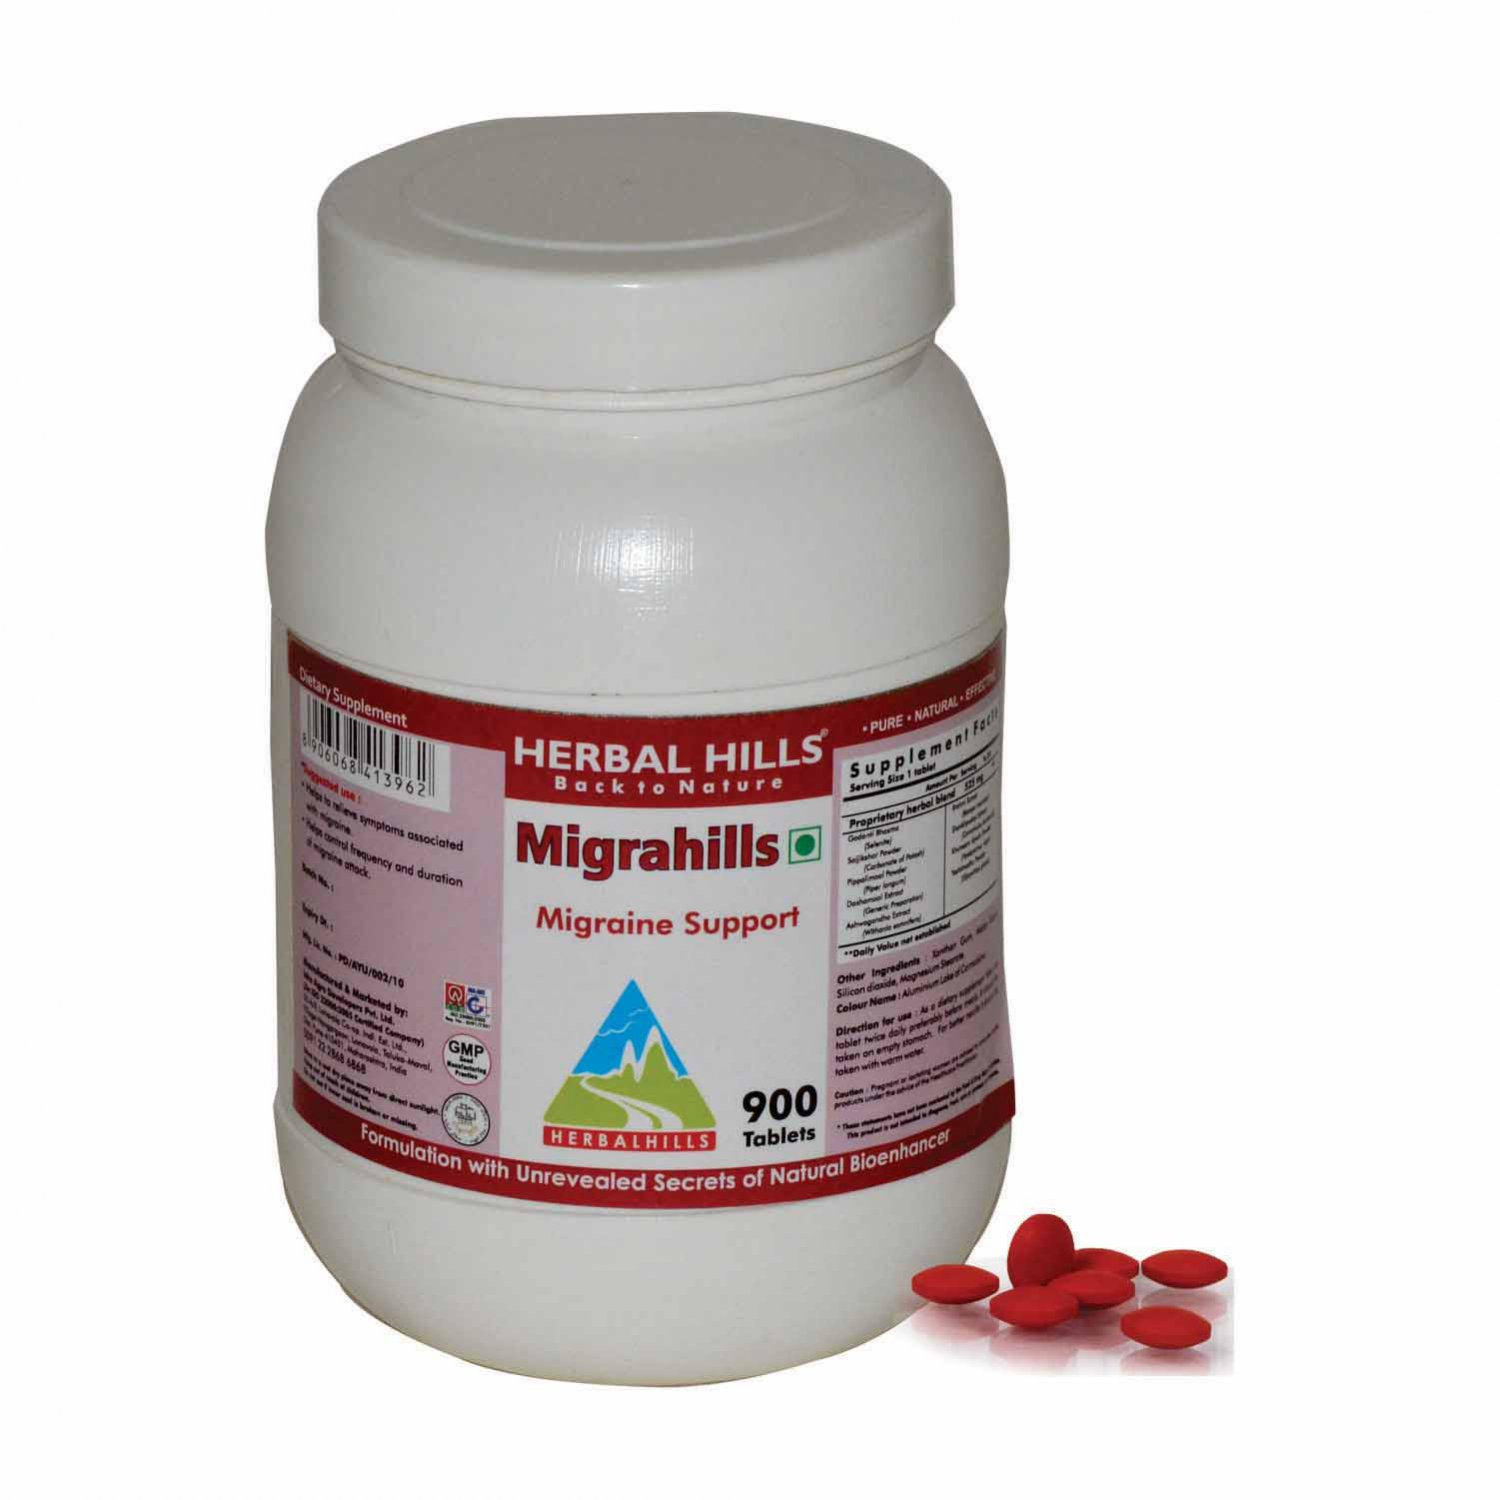 Migrahills 900 Tablets - Migraine Support